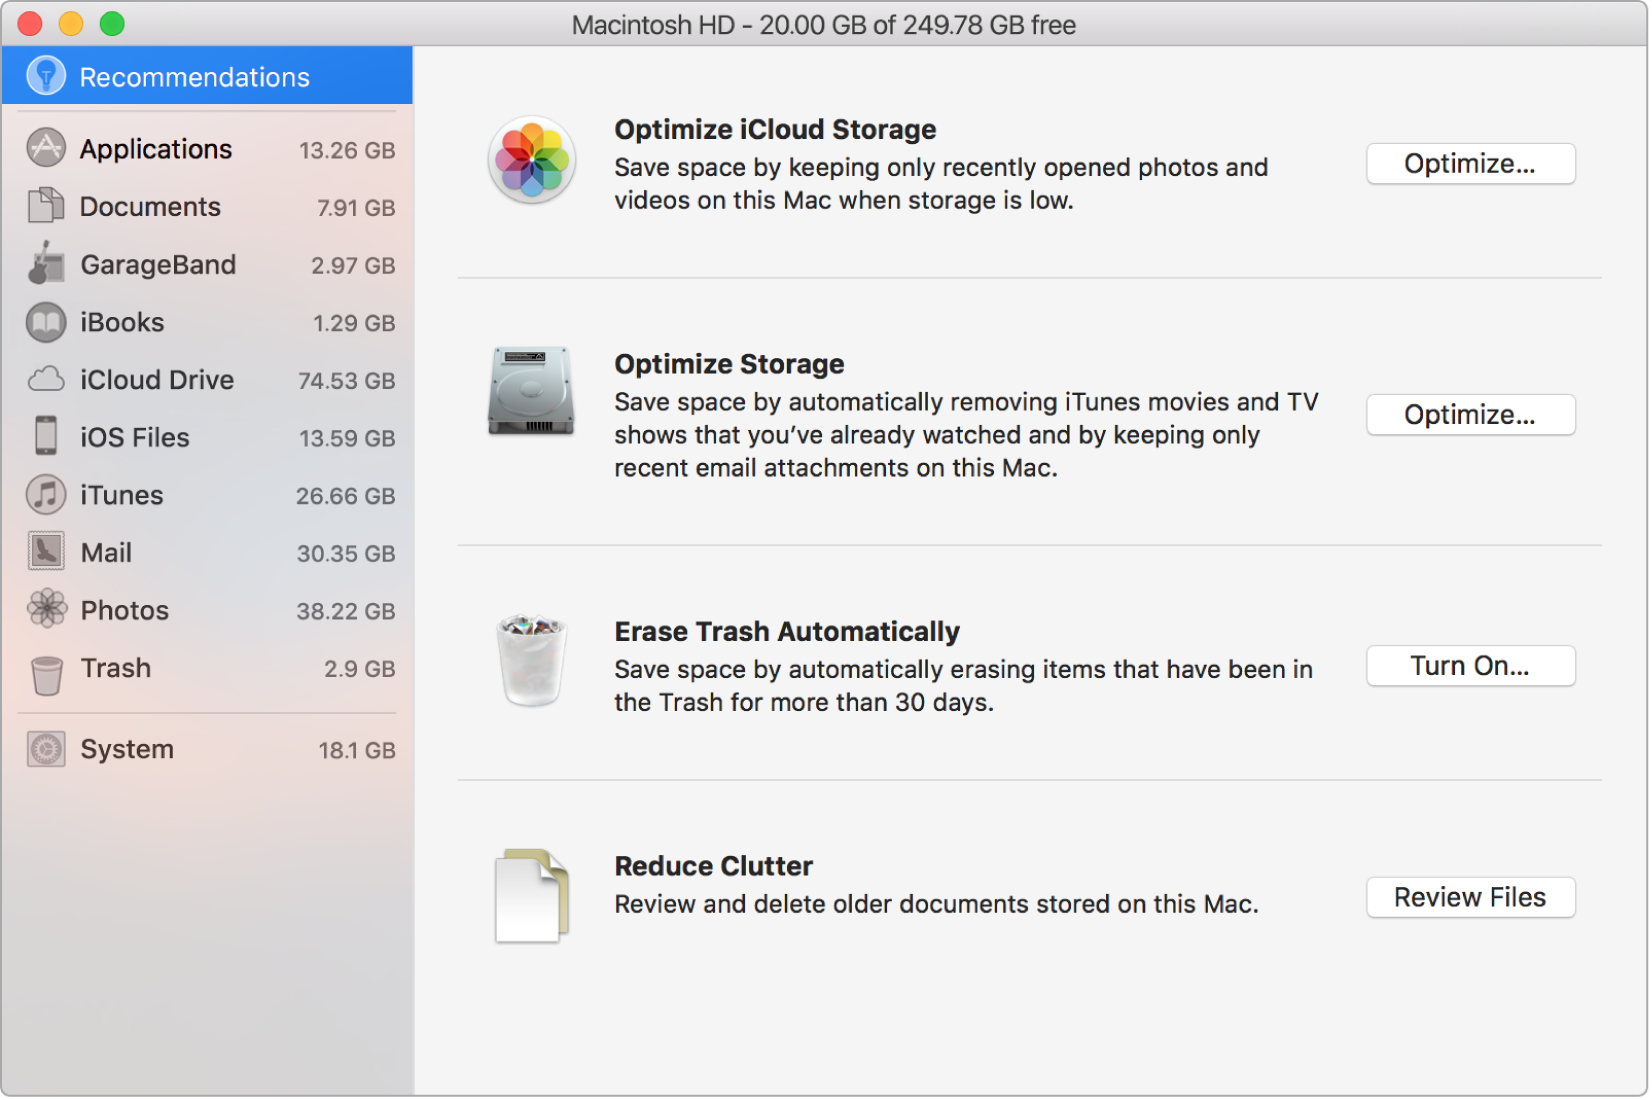 The Recommendations preferences for storage, showing the options Optimize iCloud Storage, Optimize Storage, Erase Trash Automatically, and Reduce Clutter.